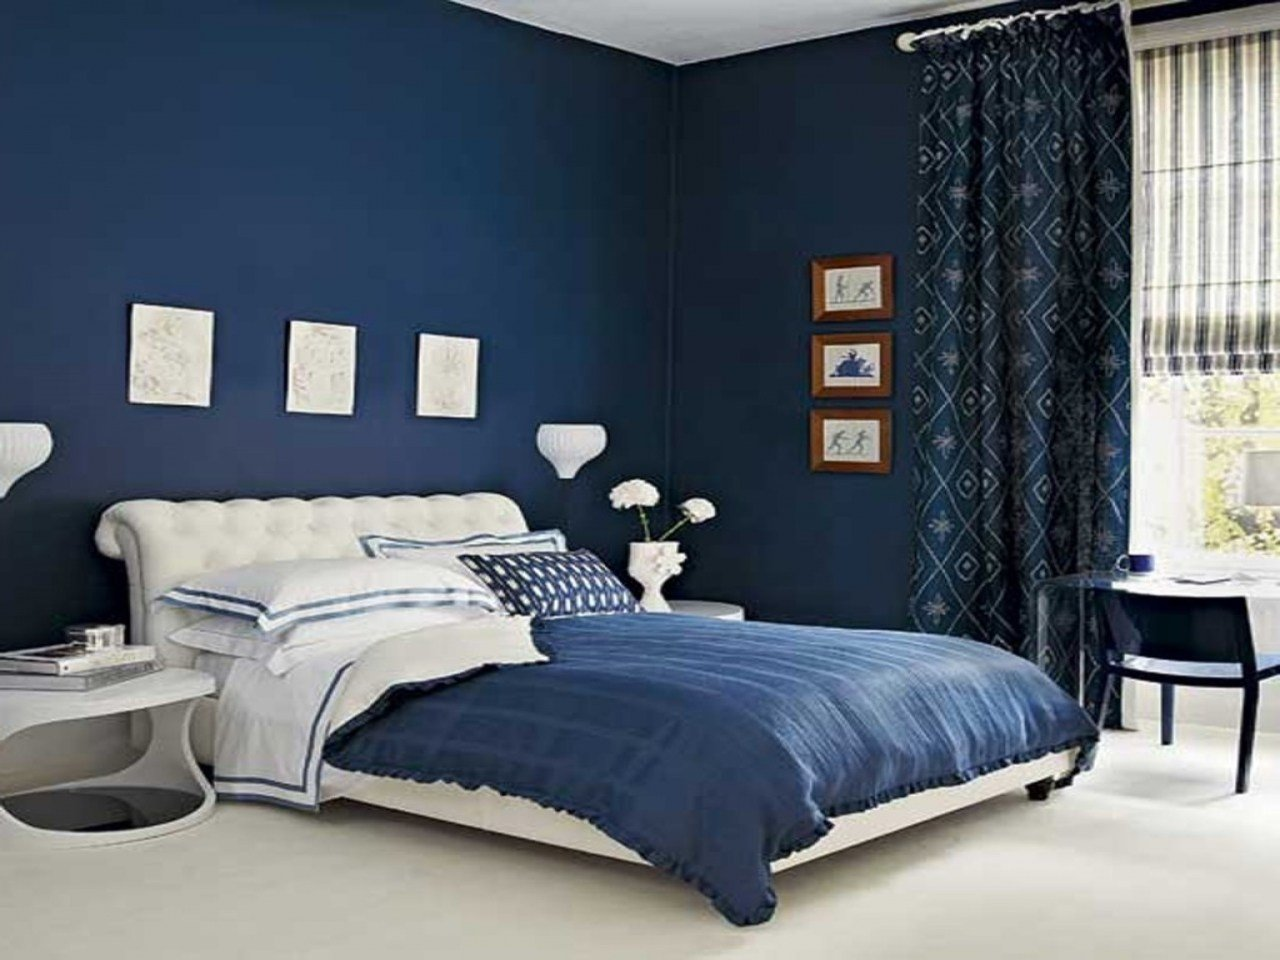 Best Royal Blue Painted Bed Room Blue Paint Colors For With Pictures